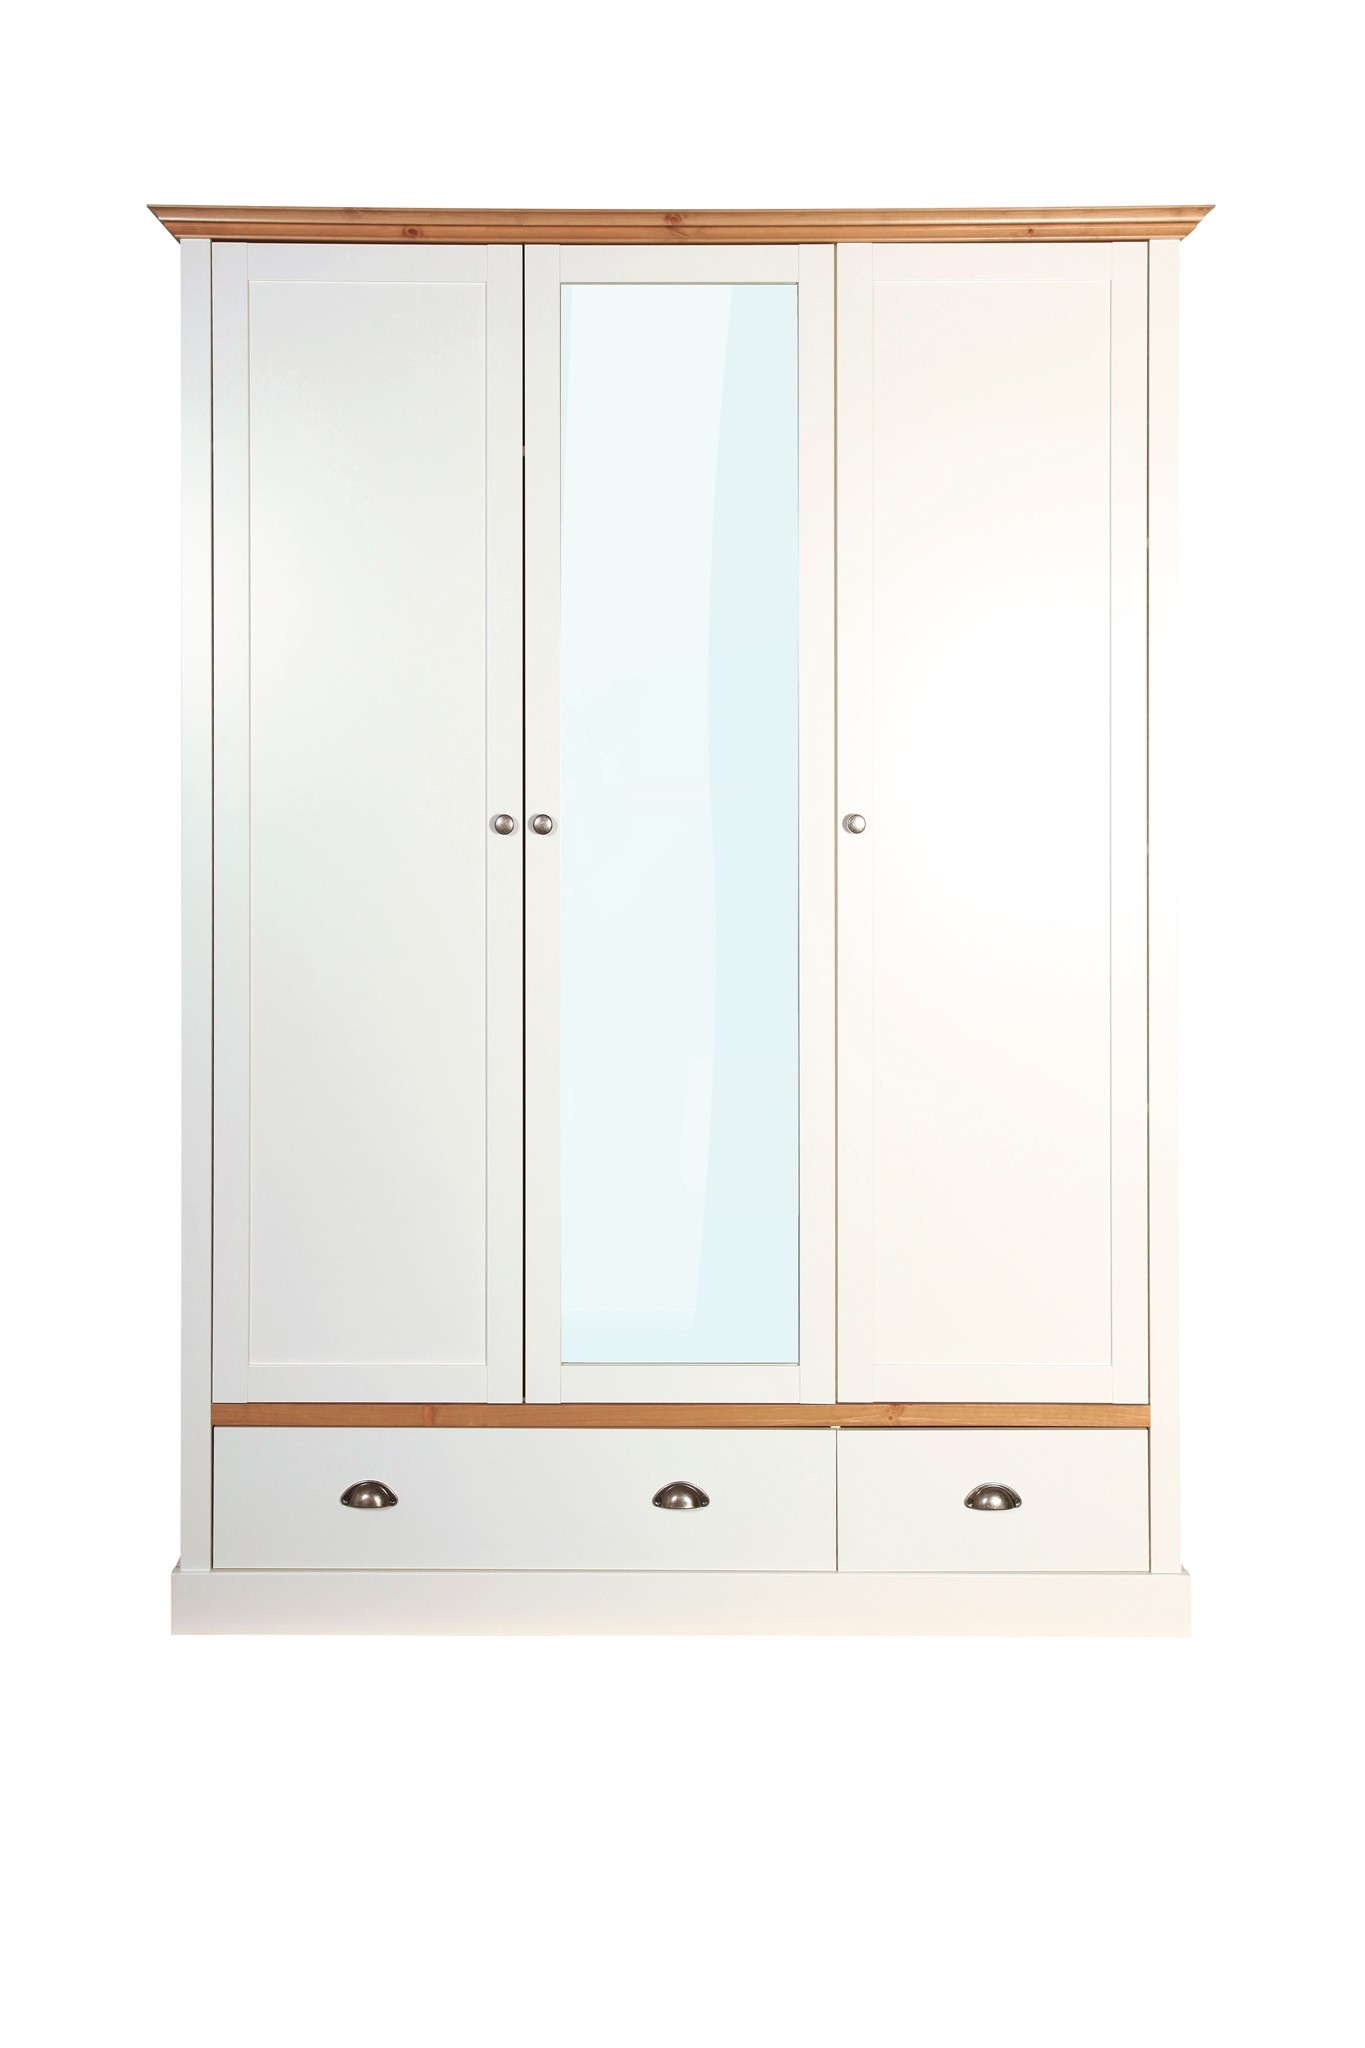 Sandringham 3 Door 2 Drawer Wardrobe White From The Original In 3 Door White Wardrobes (Image 18 of 25)